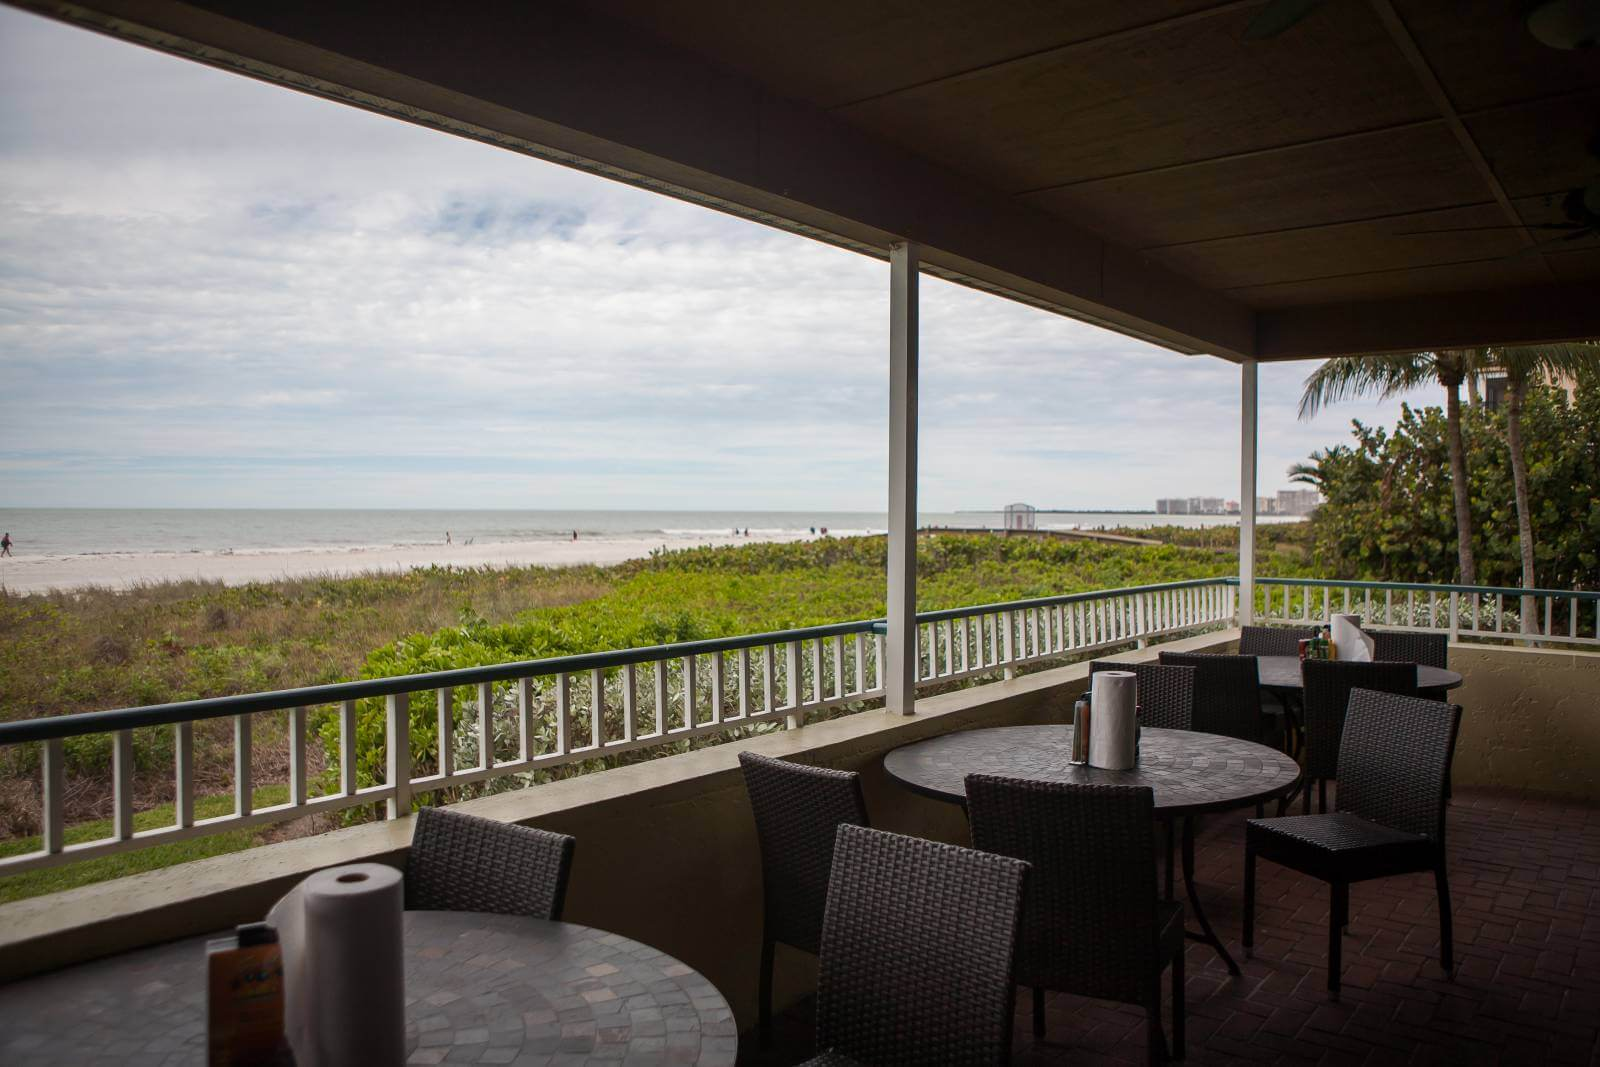 Tables overlooking the beach and Gulf of Mexico at the Sunset Grille restaurant Marco Island, Florida.